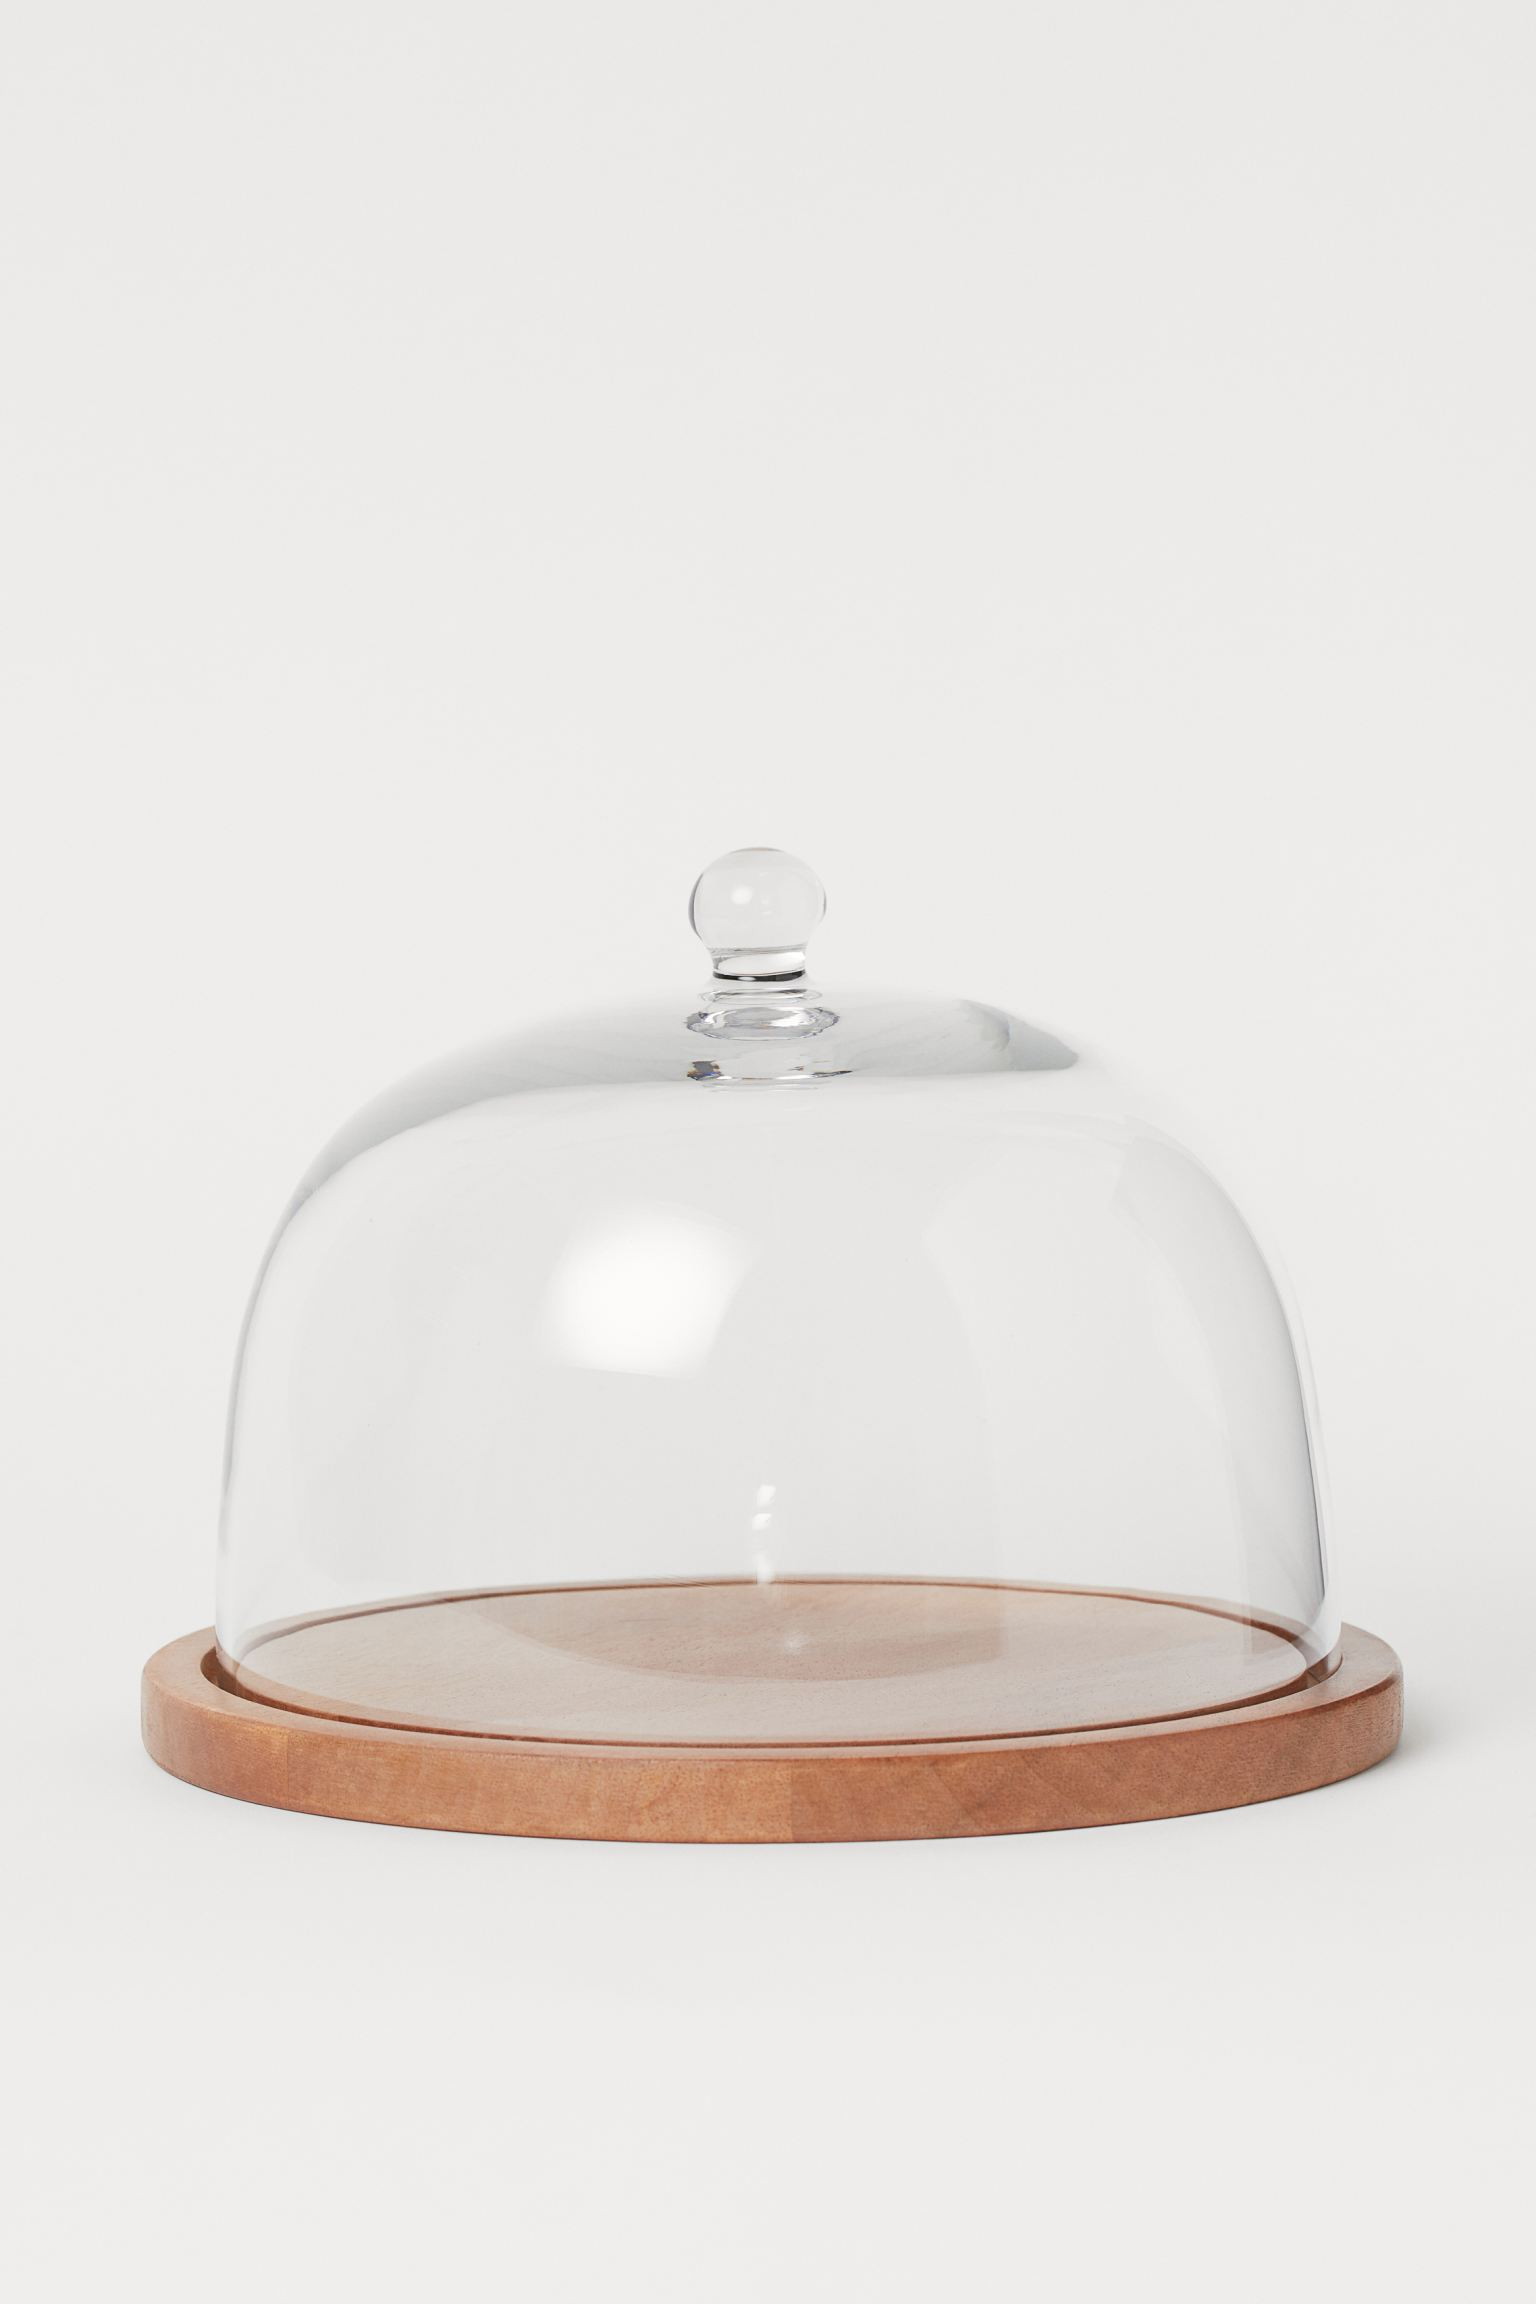 glass dome with tray